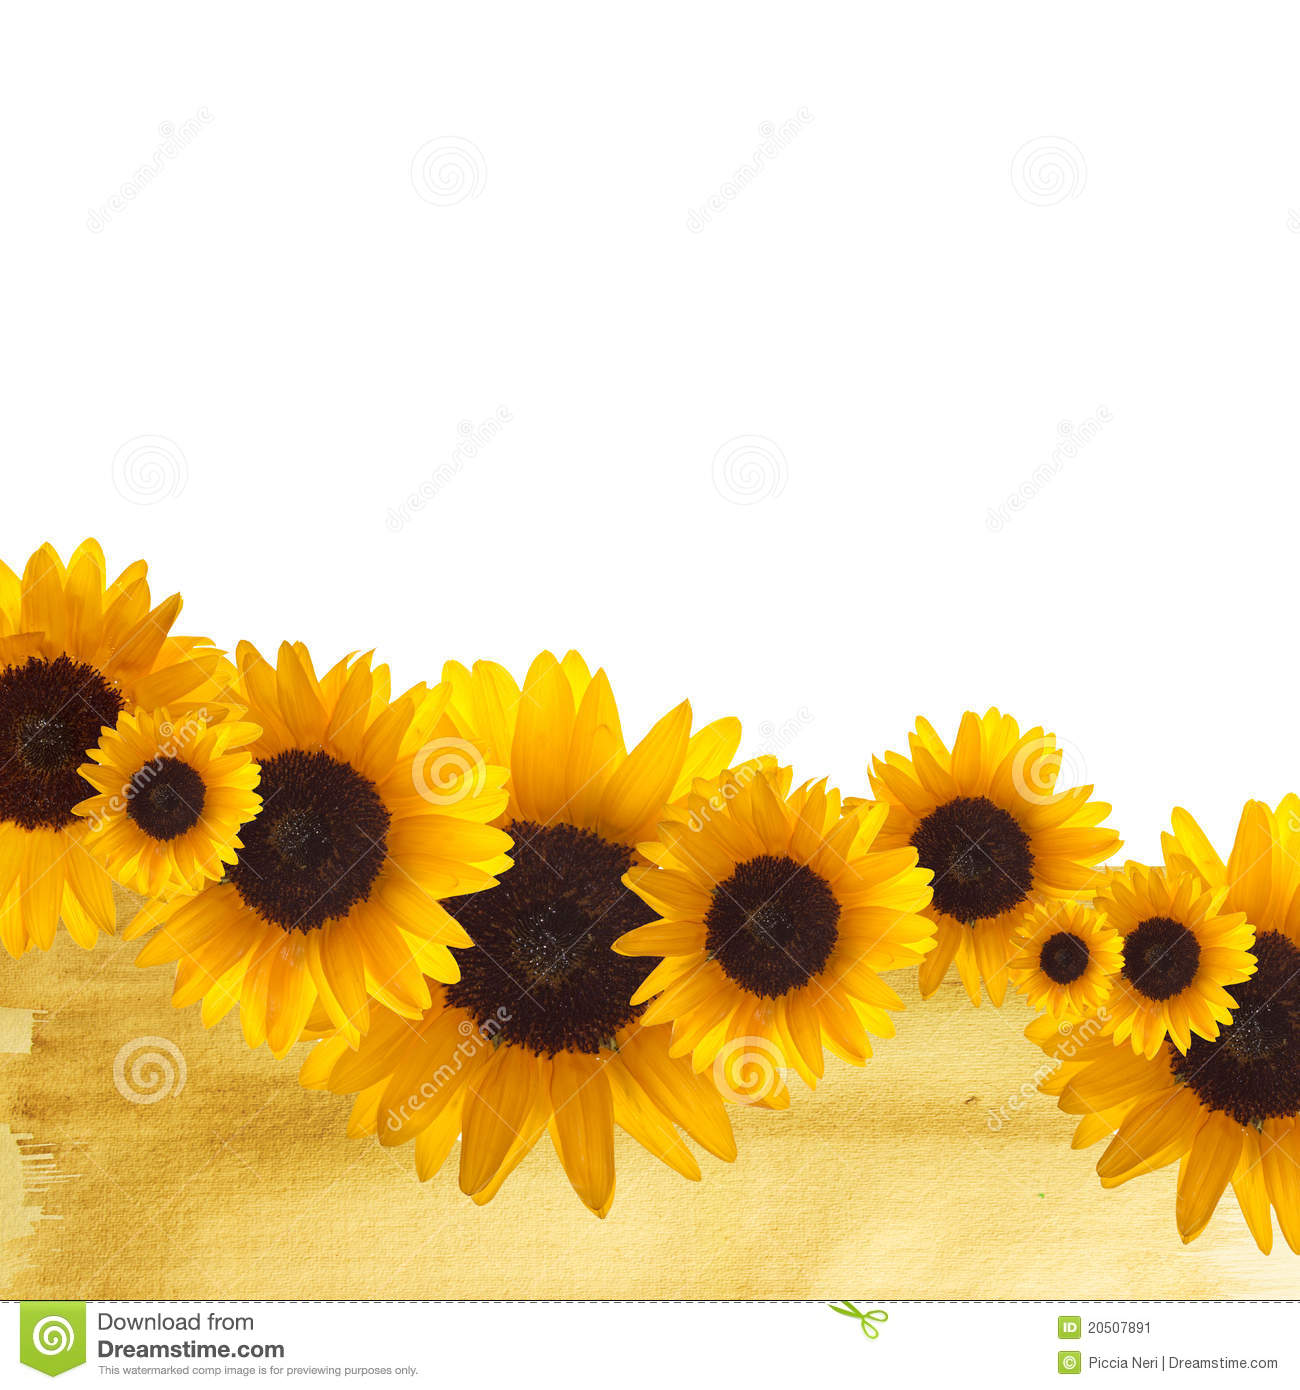 clip art borders sunflowers - photo #46